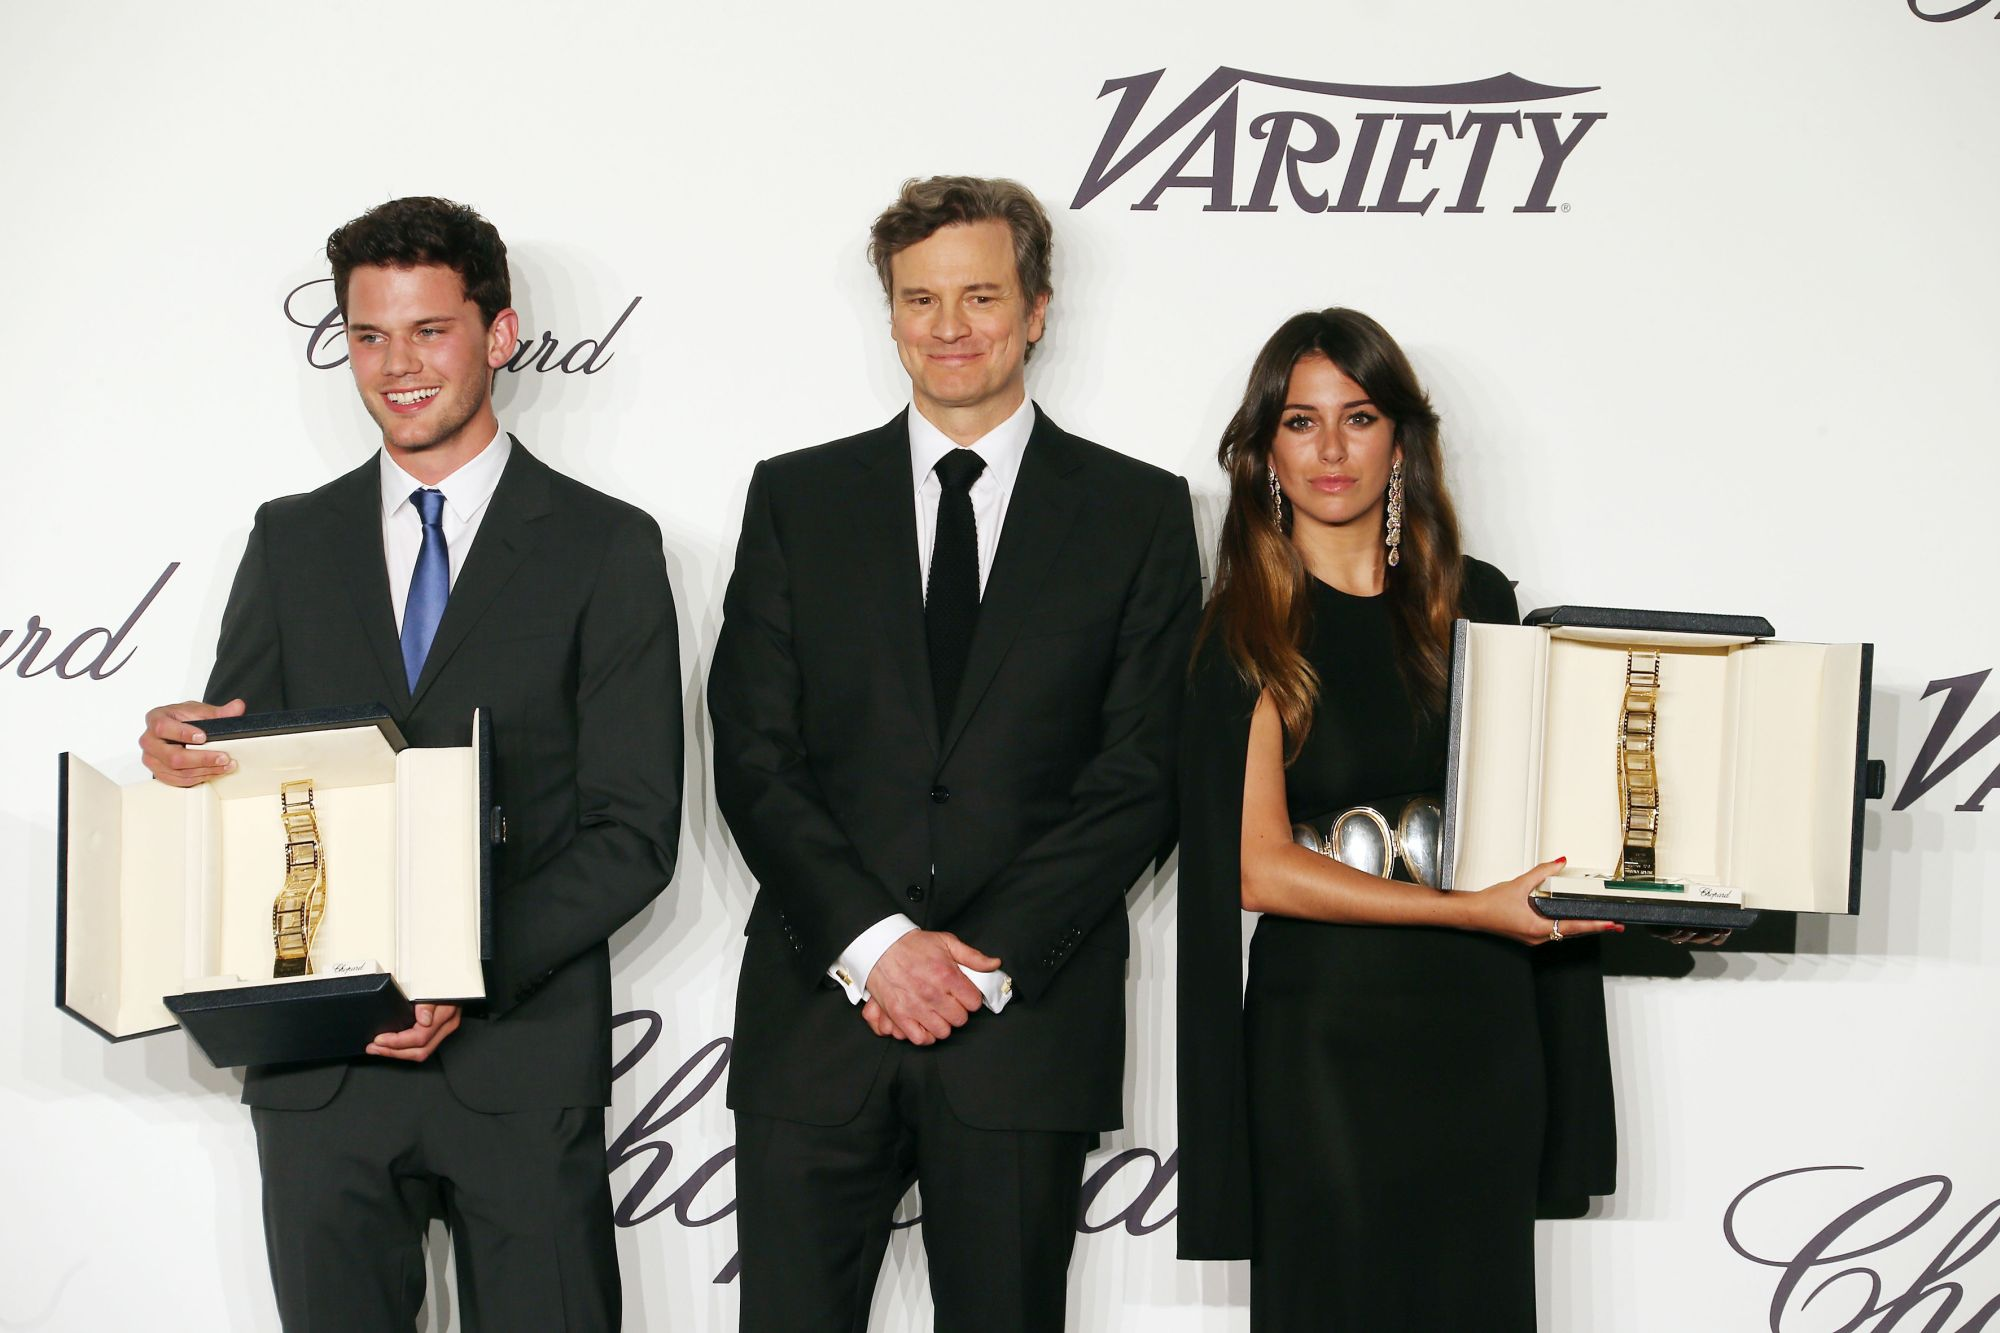 Jeremy_Irvine_Colin_Firth_and_Blanca_Suarez_in_Chopard p